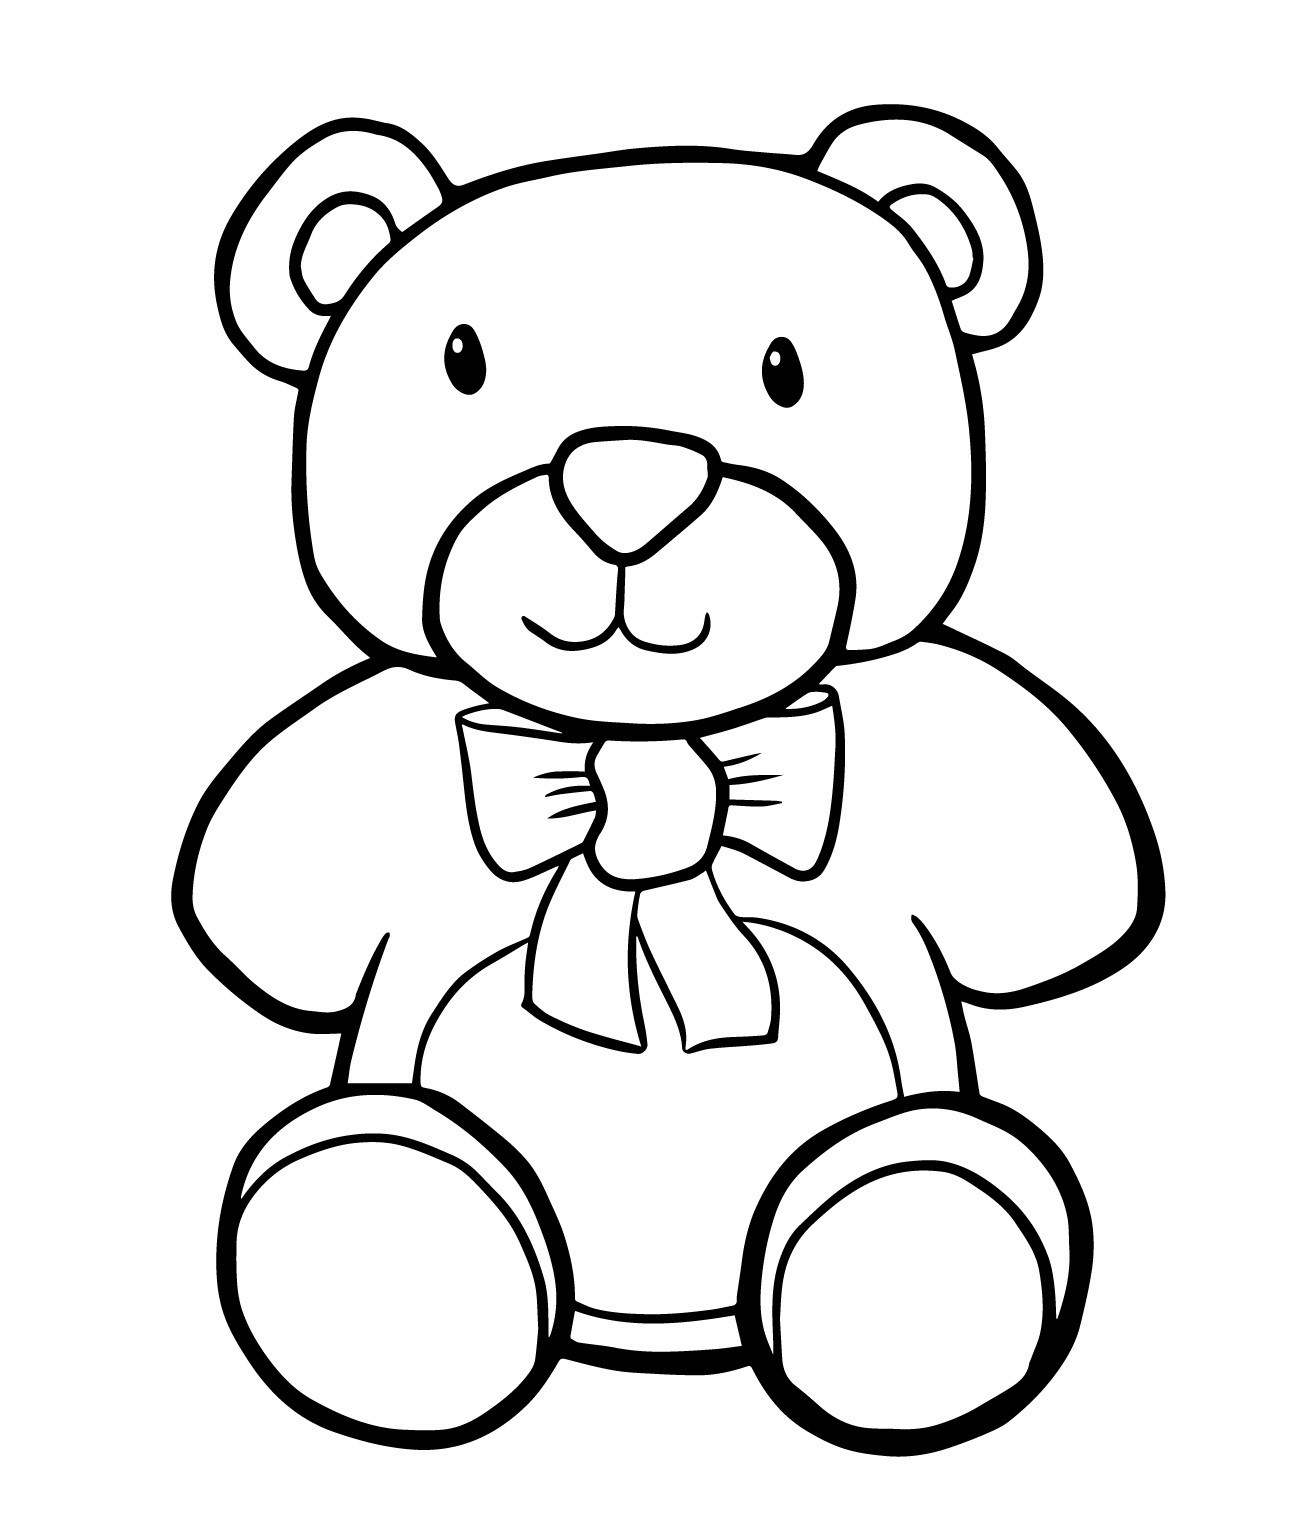 colouring teddy bear free printable teddy bear coloring pages for kids colouring bear teddy